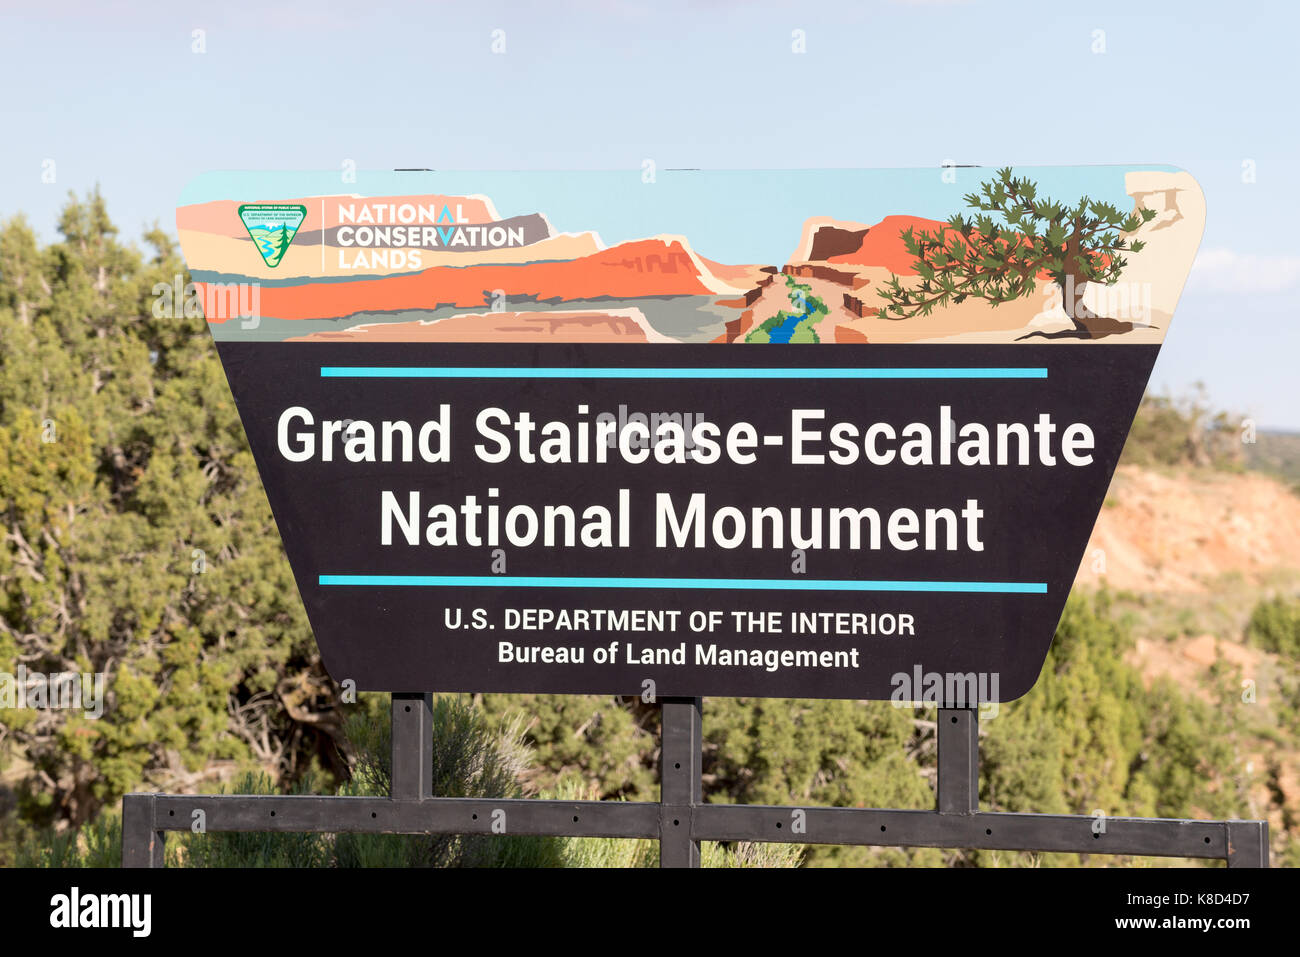 Grand Staircase - Escalante National Monument sign near Escalante, Utah. - Stock Image